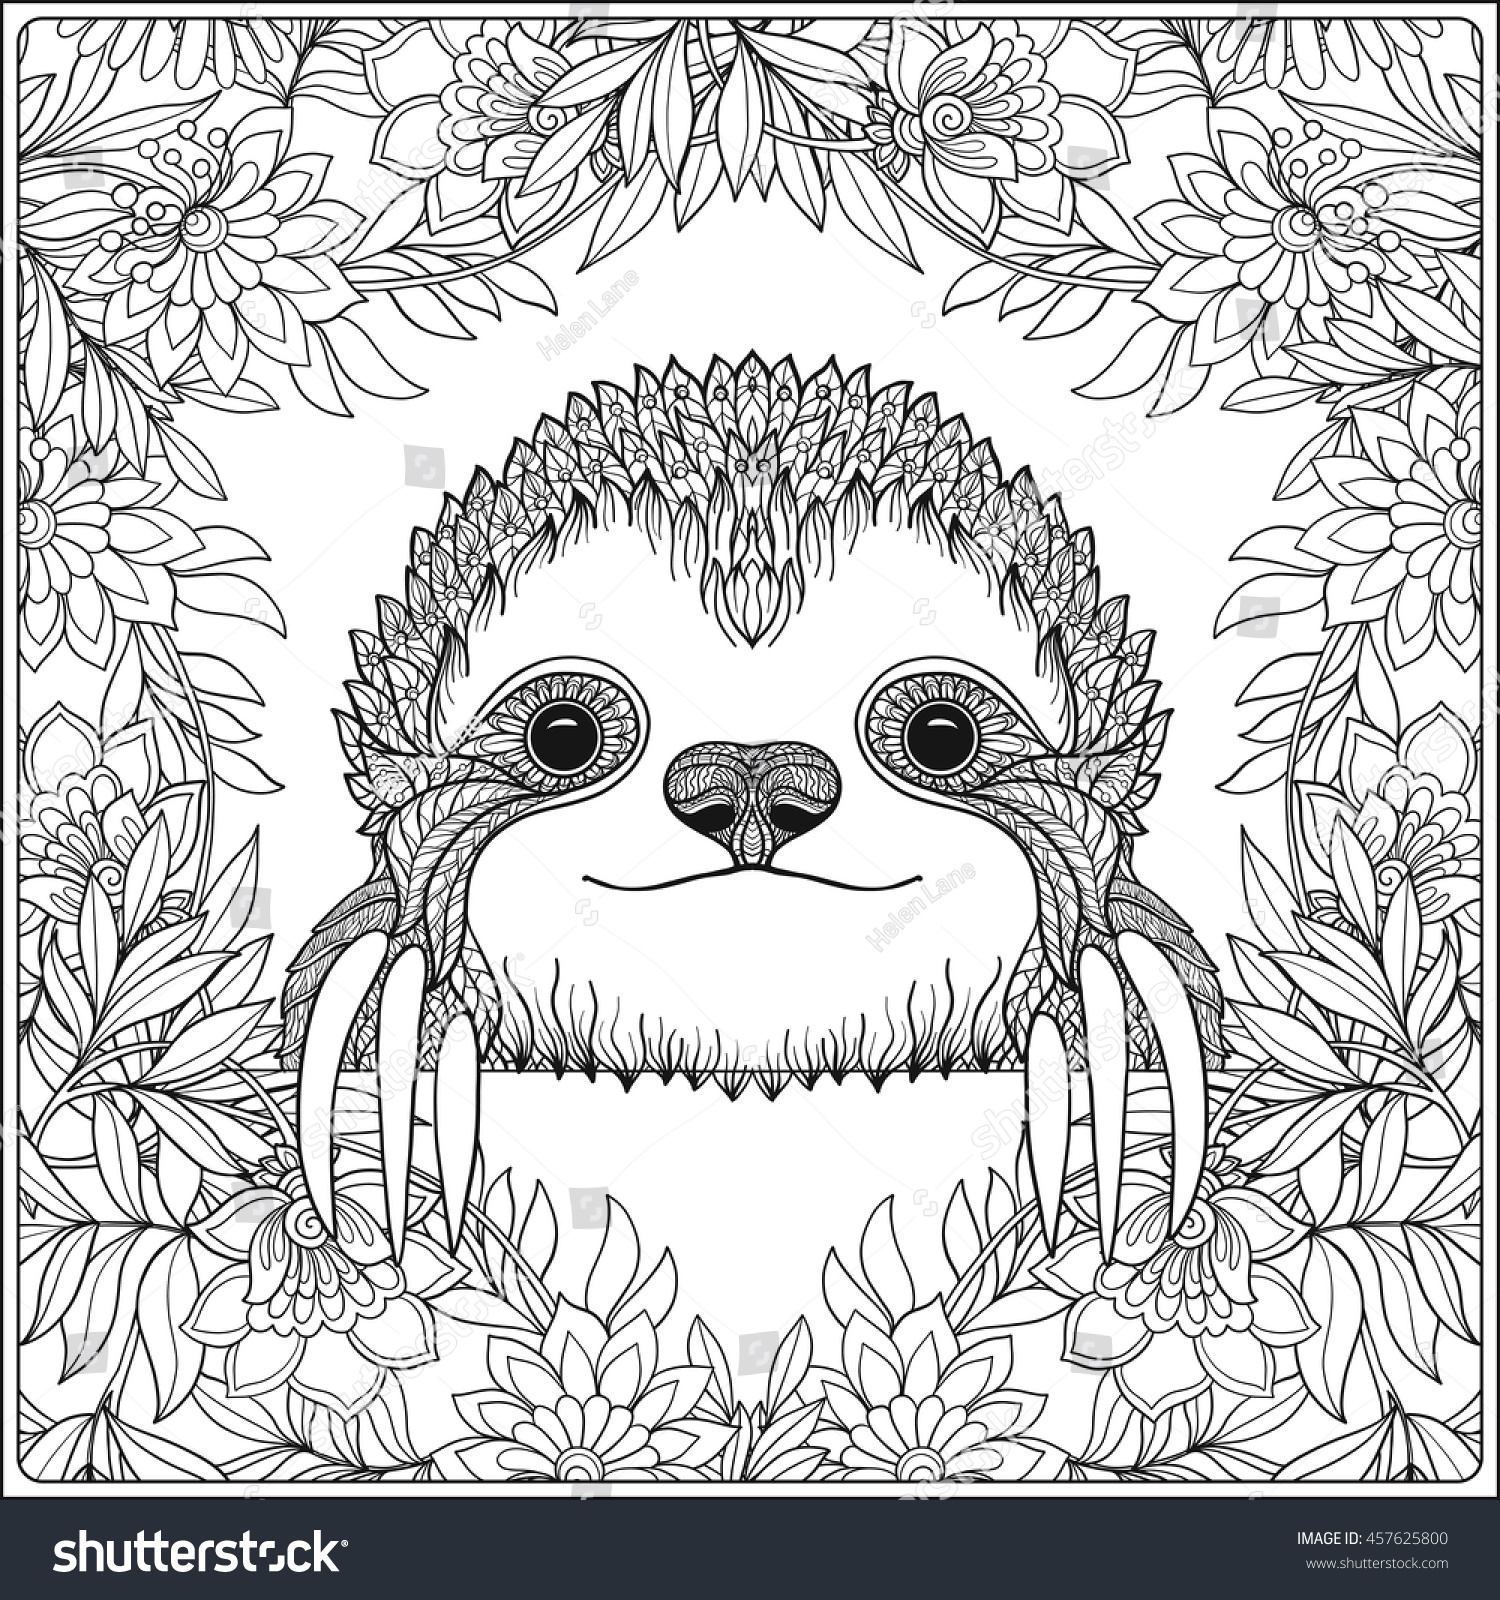 Clip Art Sloth Coloring Pages sloth coloring page futpal com pages eassume